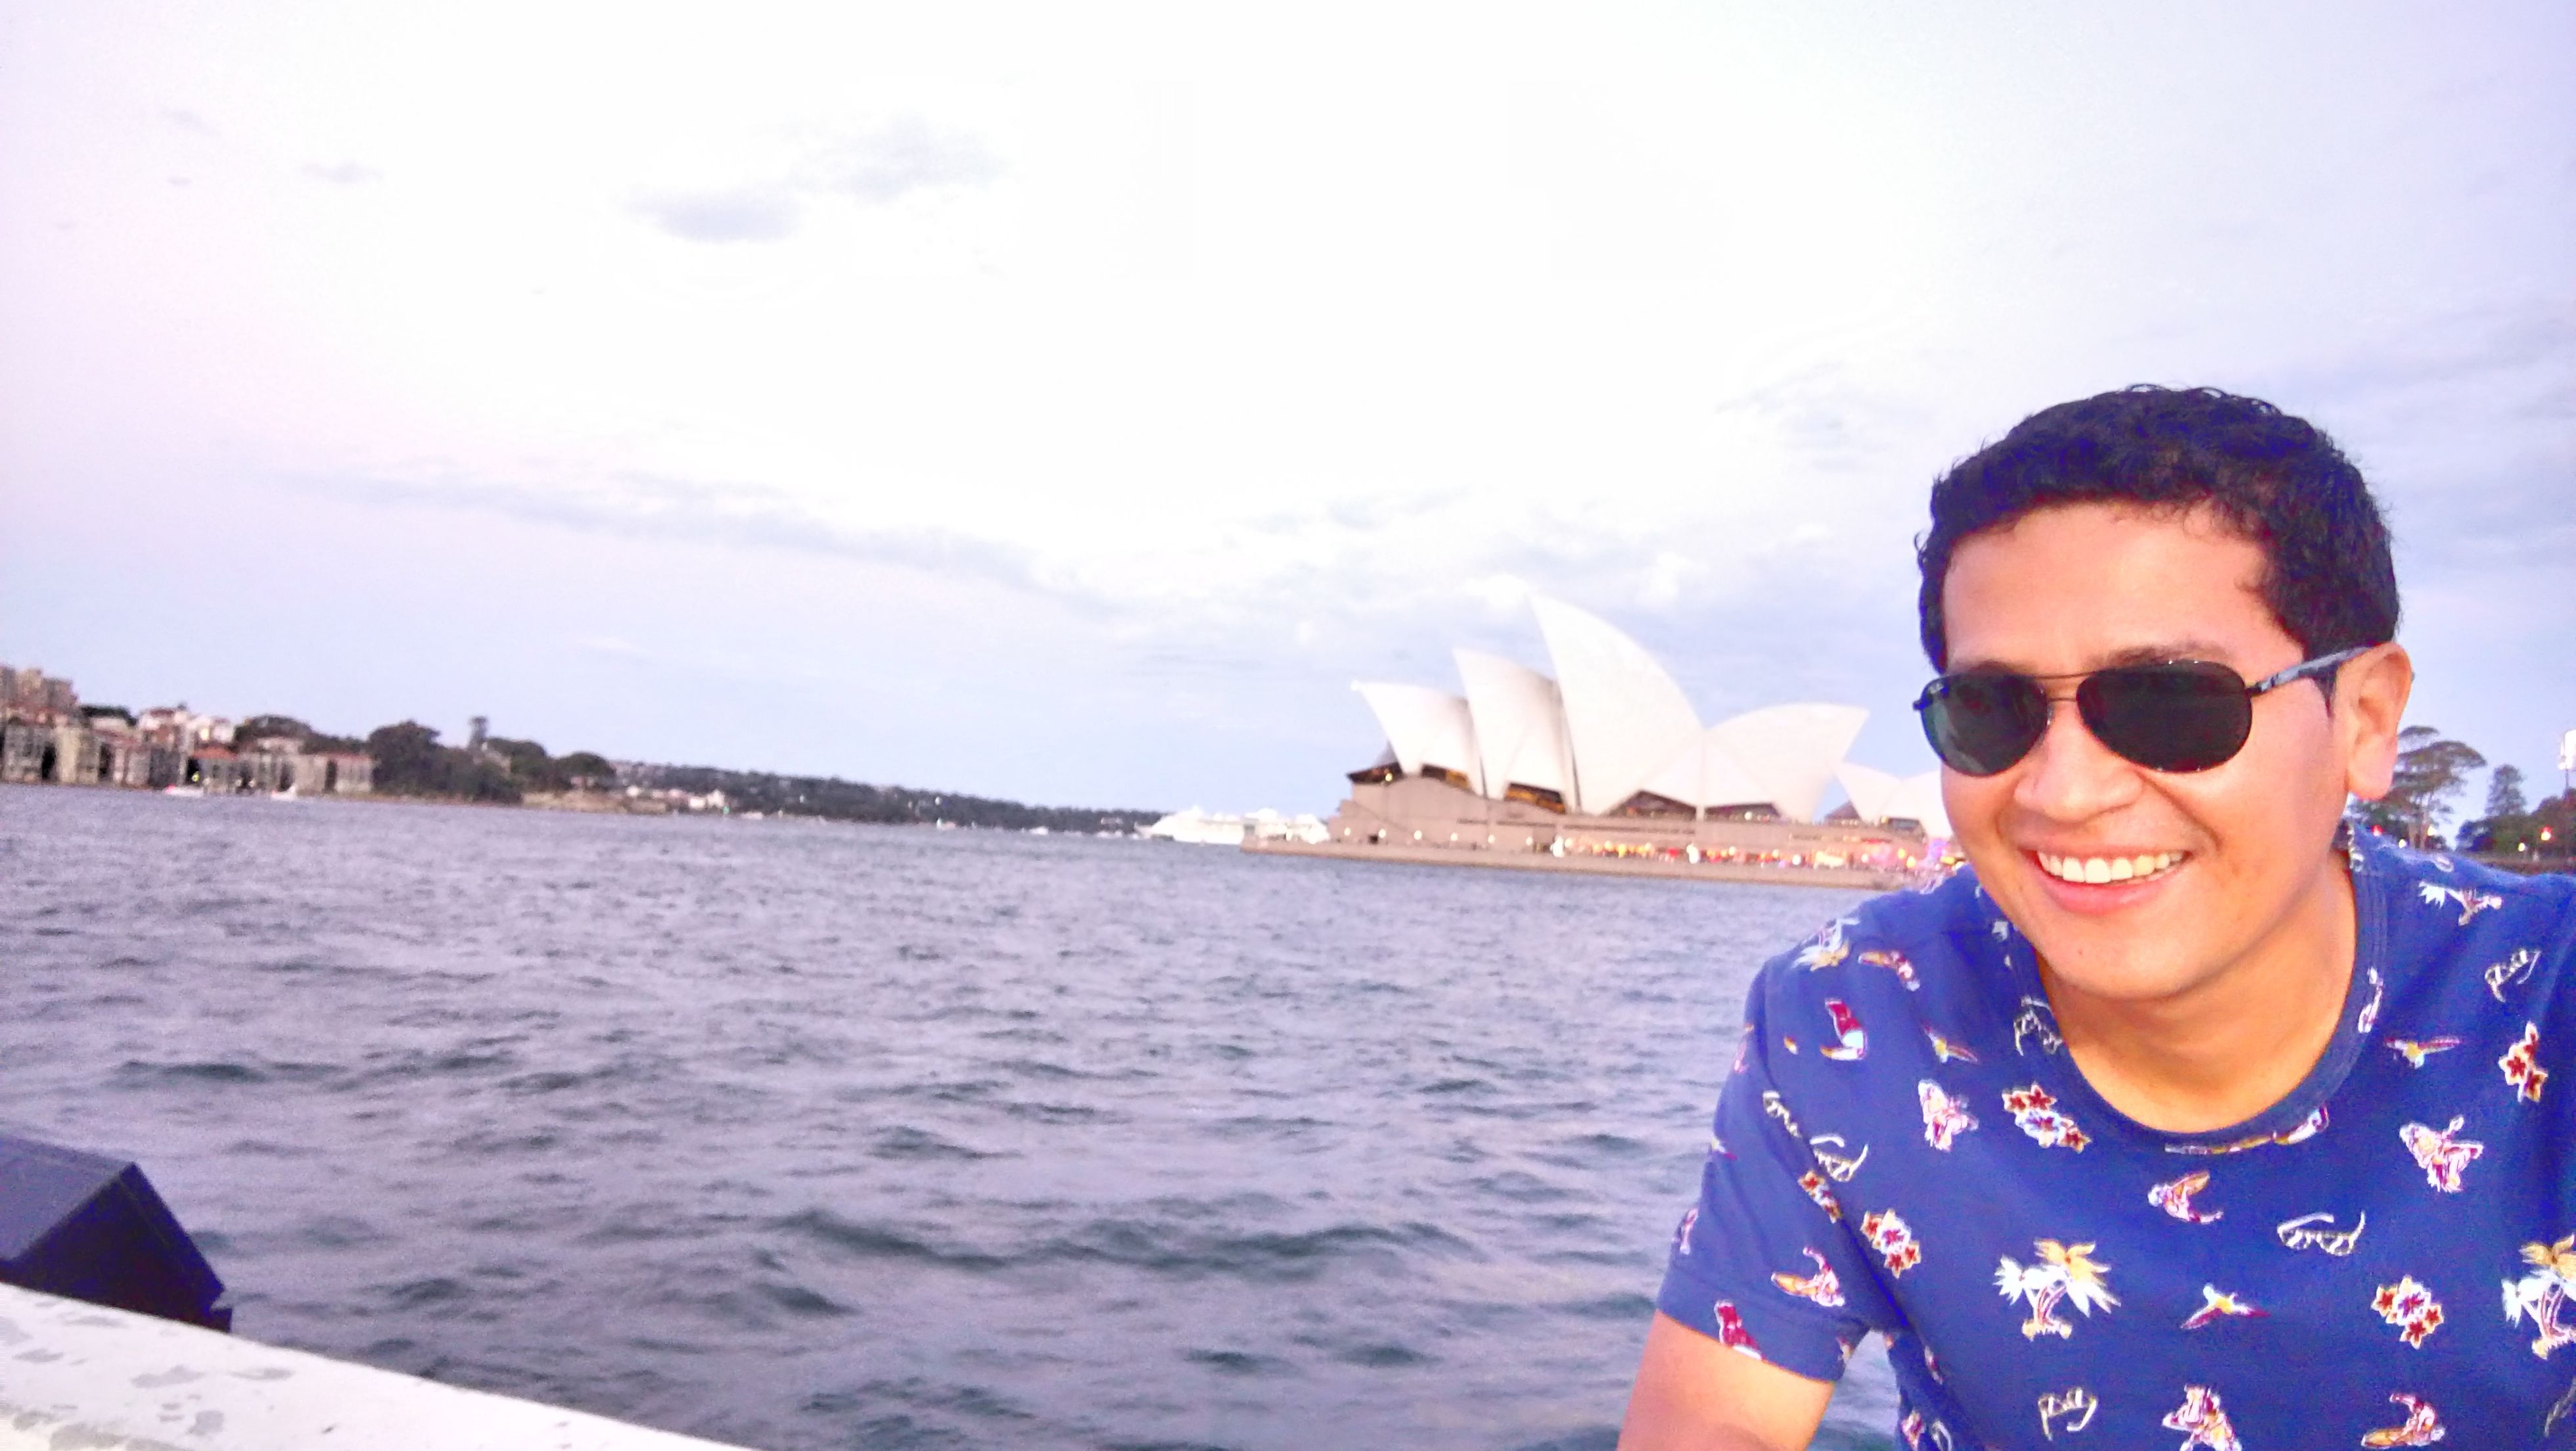 sydney singles Find meetups in sydney about singles and meet people in your local community who share your interests.